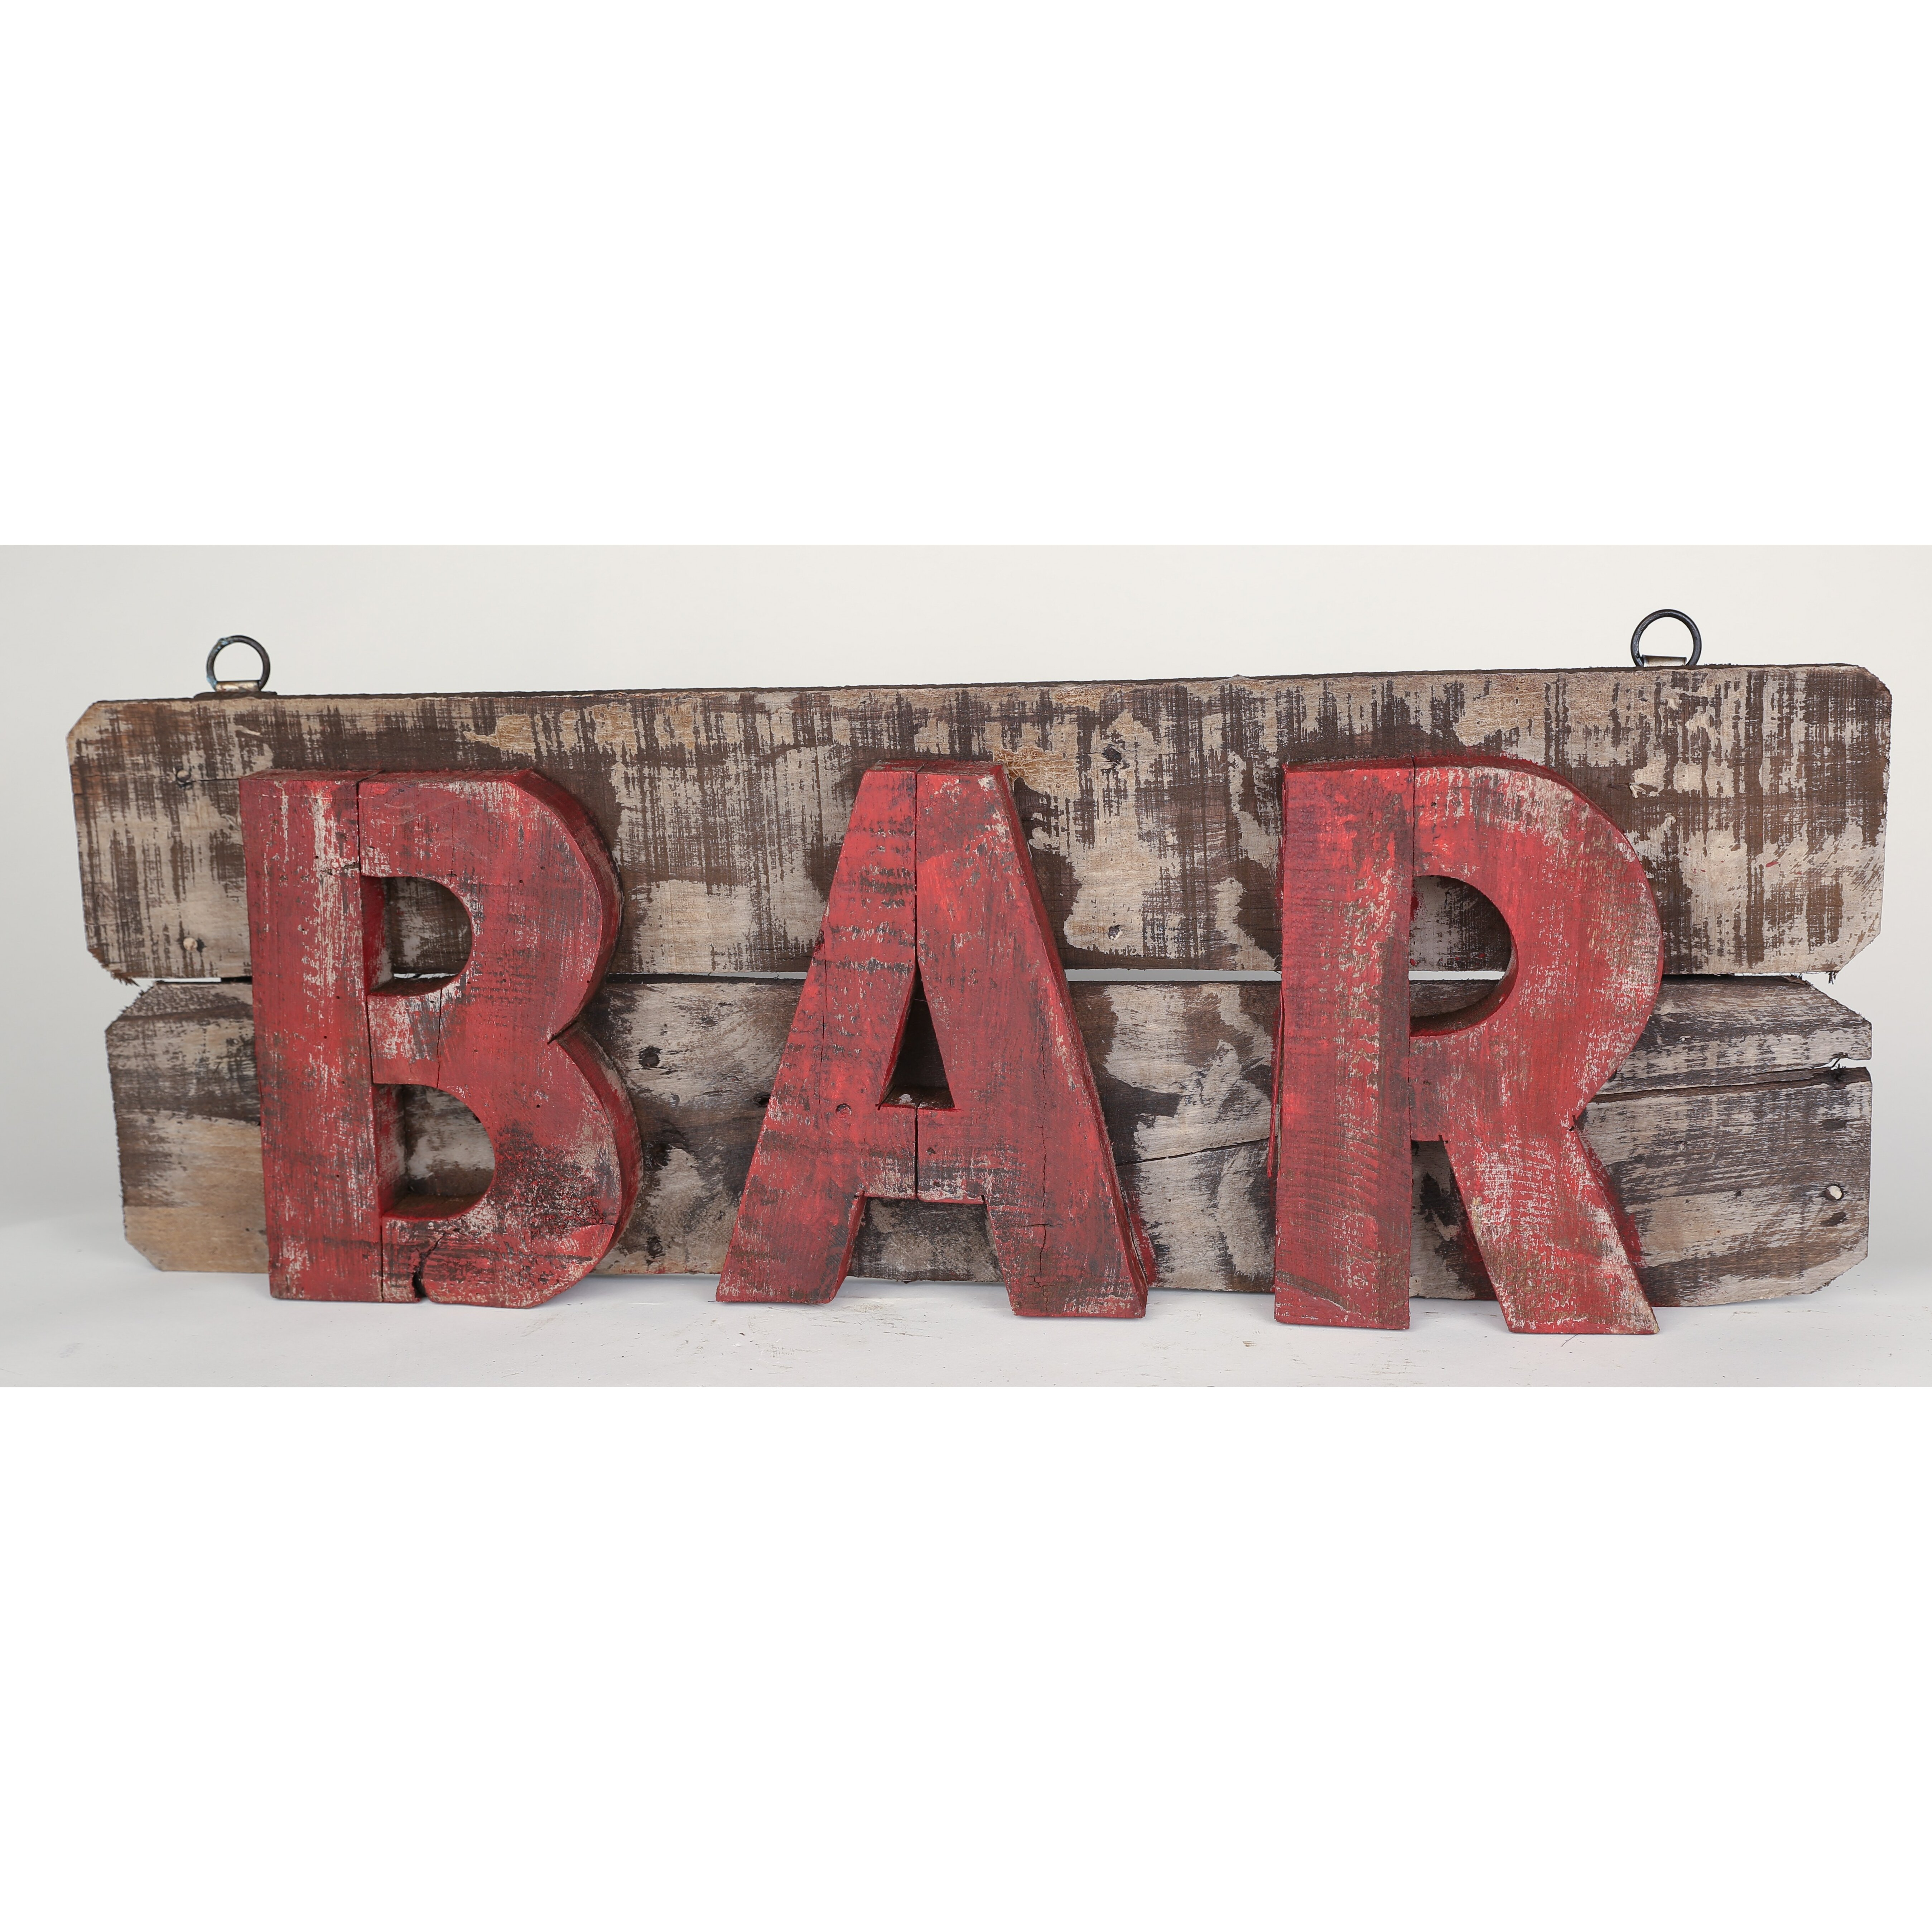 Rustic Bar Wall Decor : Myamigosimports rustic wooden bar sign wall decor wayfair